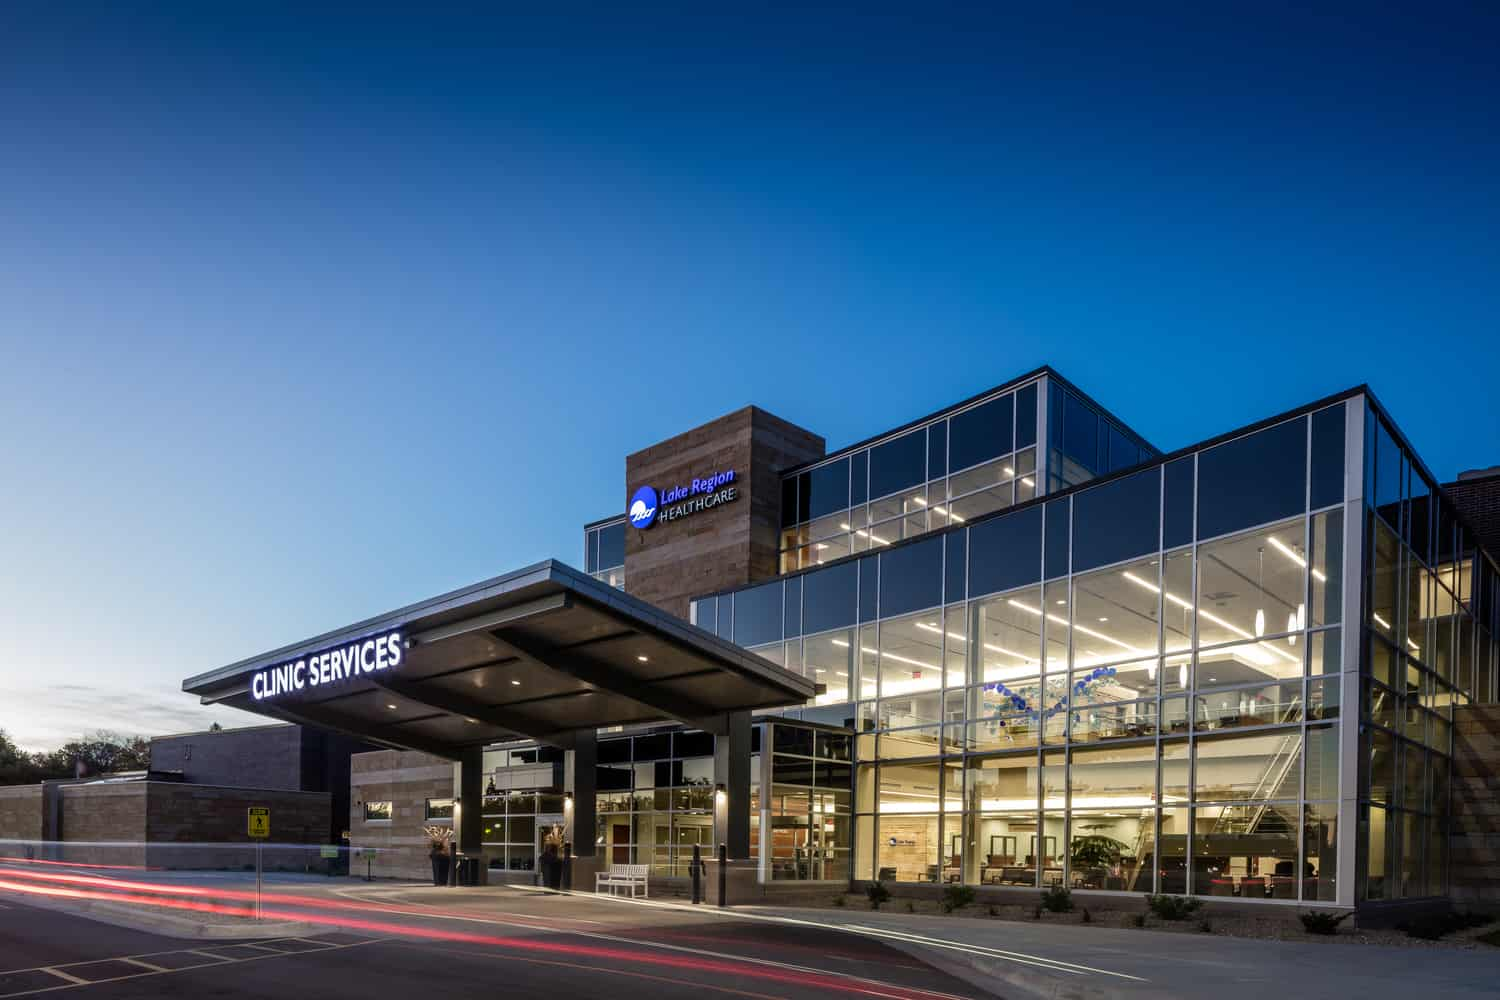 Lake Region Healthcare New Ambulatory Care Clinic and Hospital Remodeling